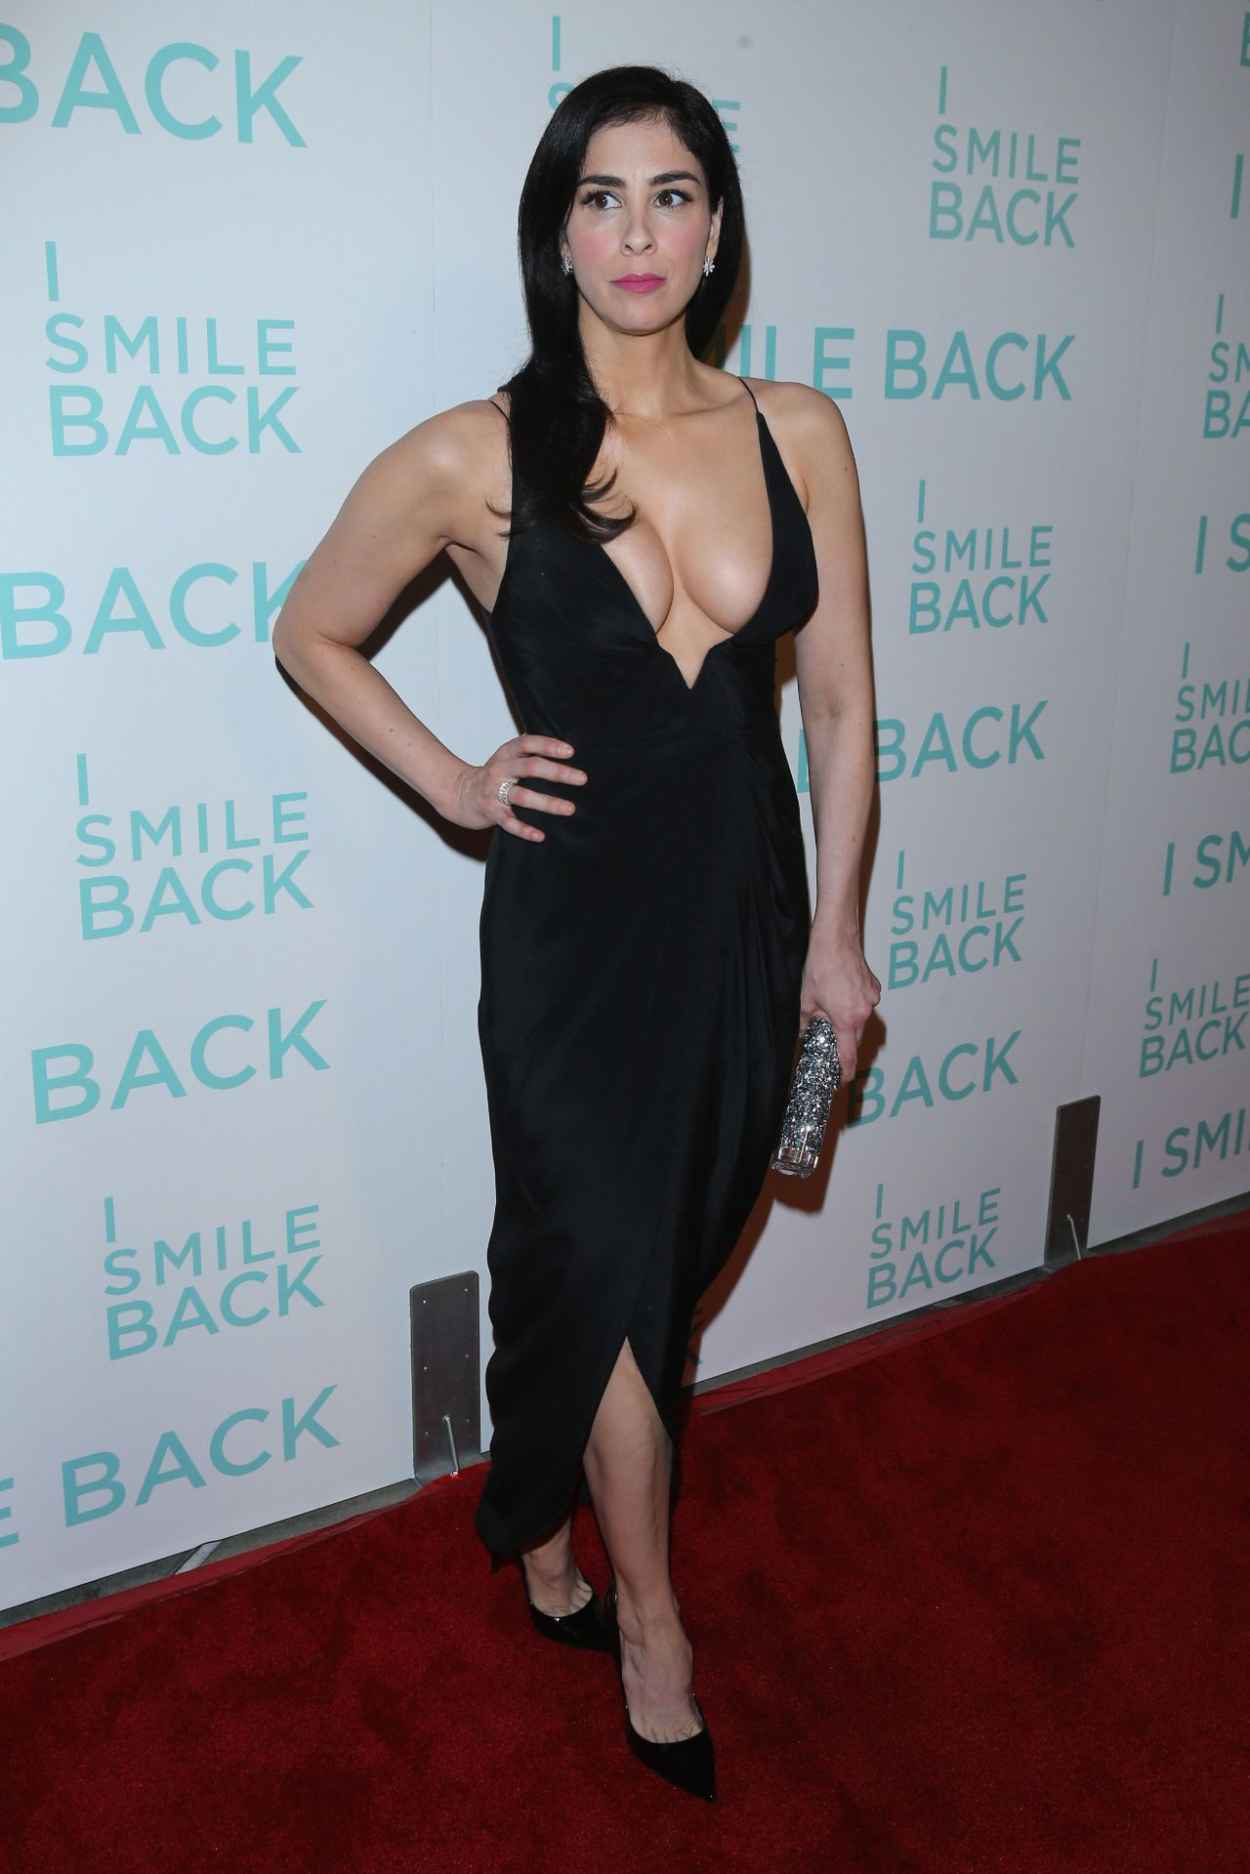 Sarah Silverman - I Smile Back Premiere in Hollywood-5